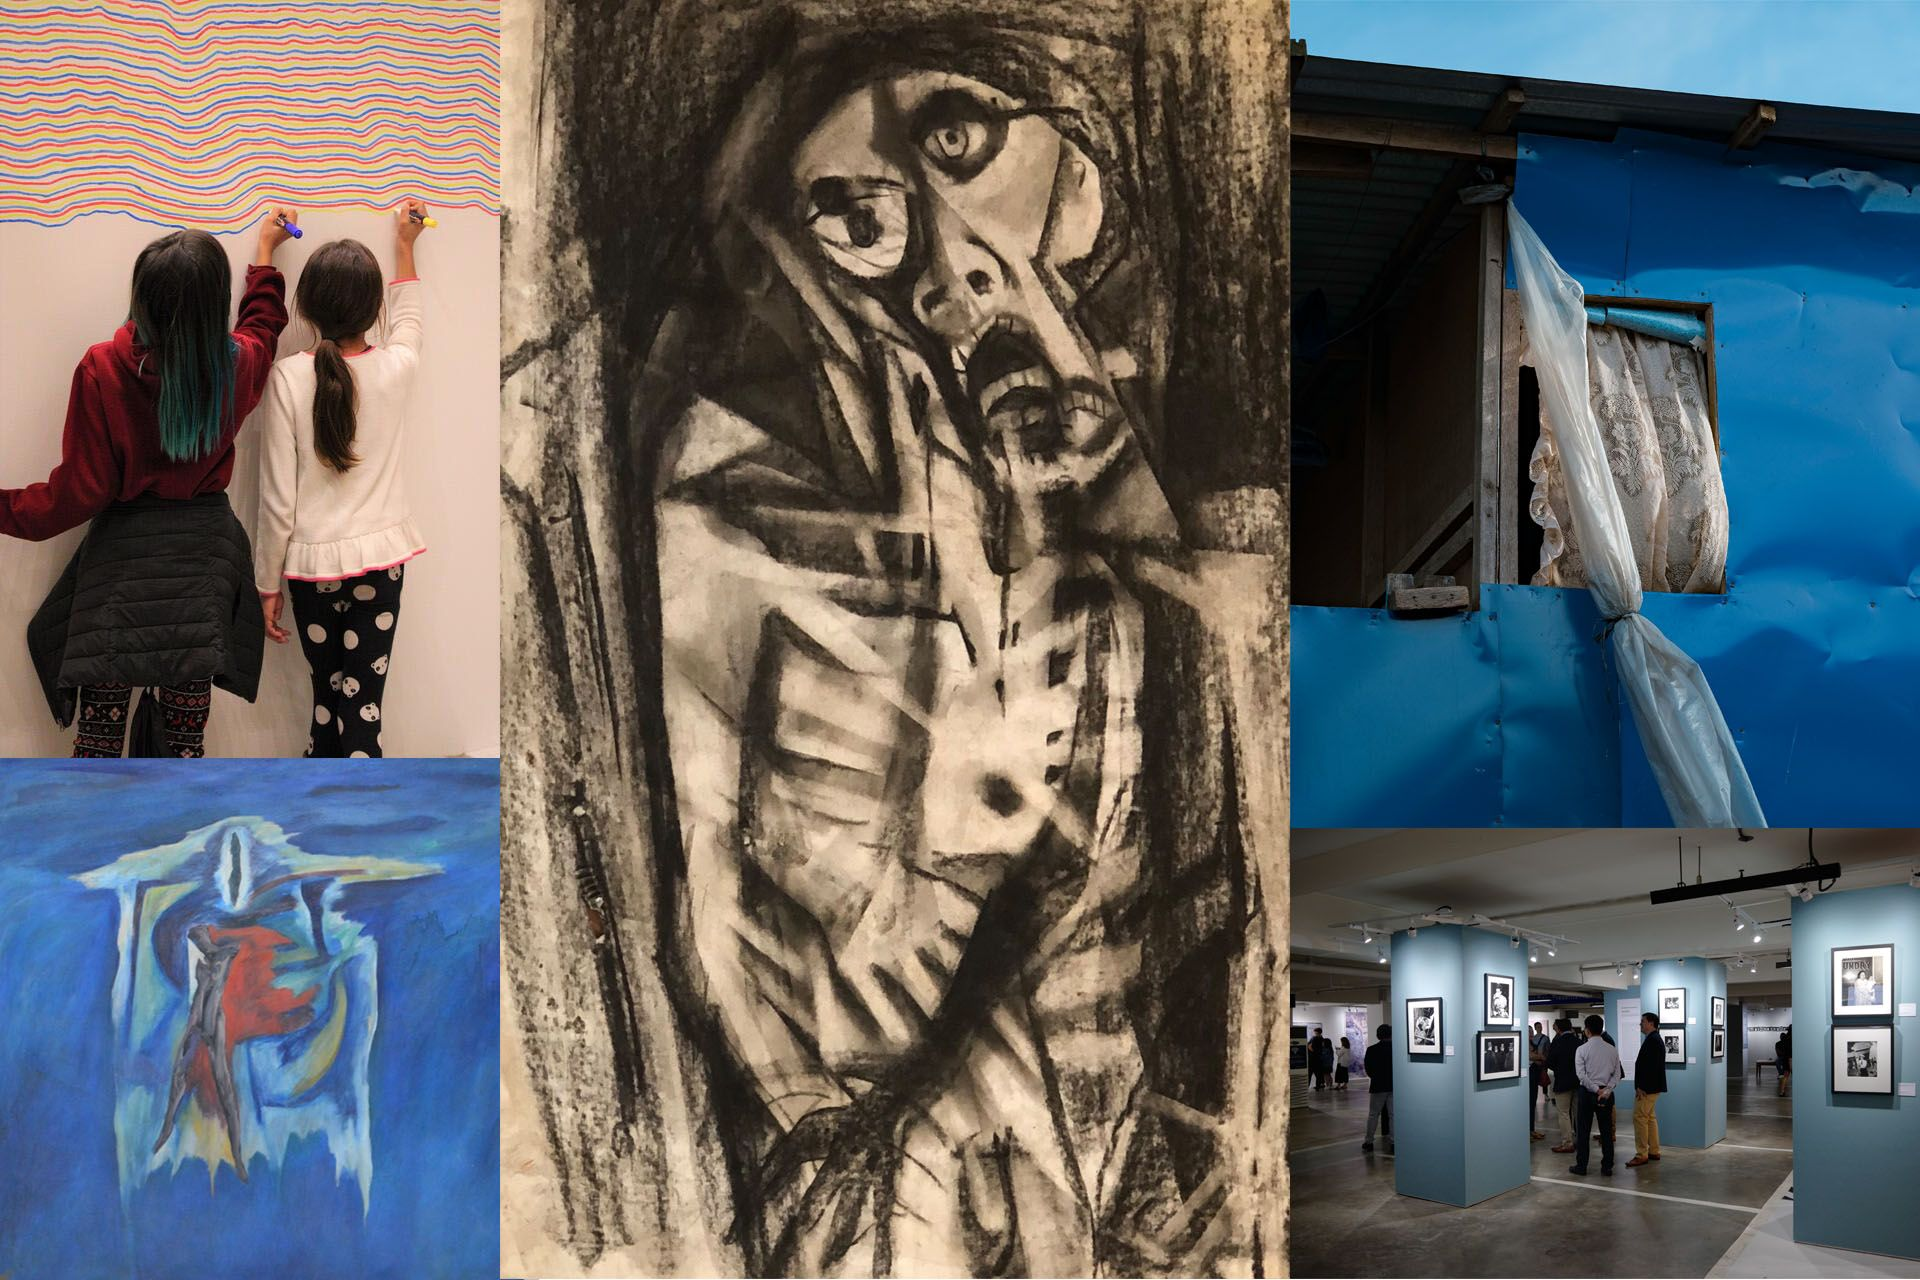 Art Fair Philippines 2020: What You Should Know About The Country's Premier Art Exhibition